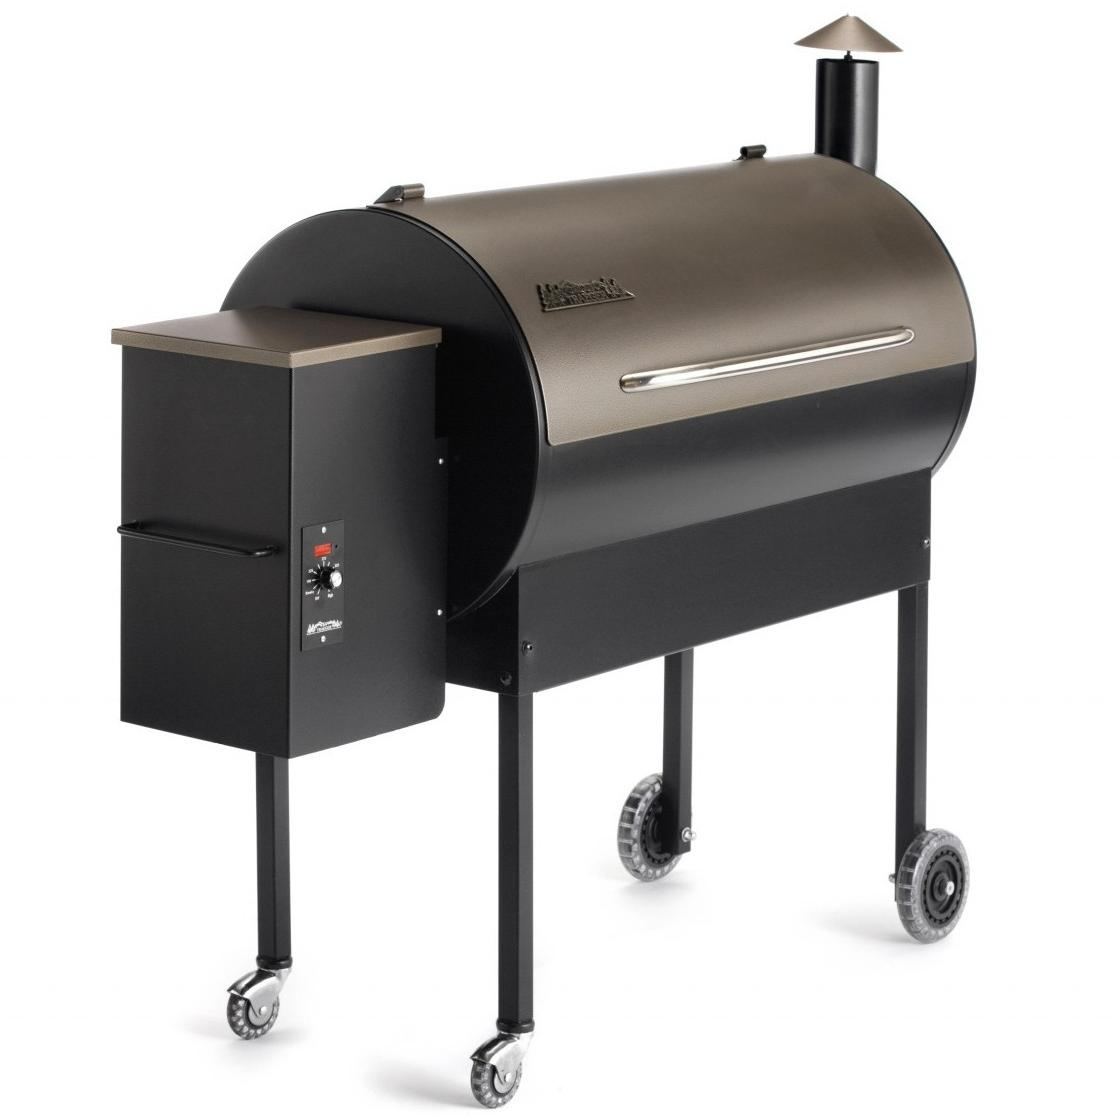 Sales For Traeger Xl Pellet Grill On Cart Prices Price